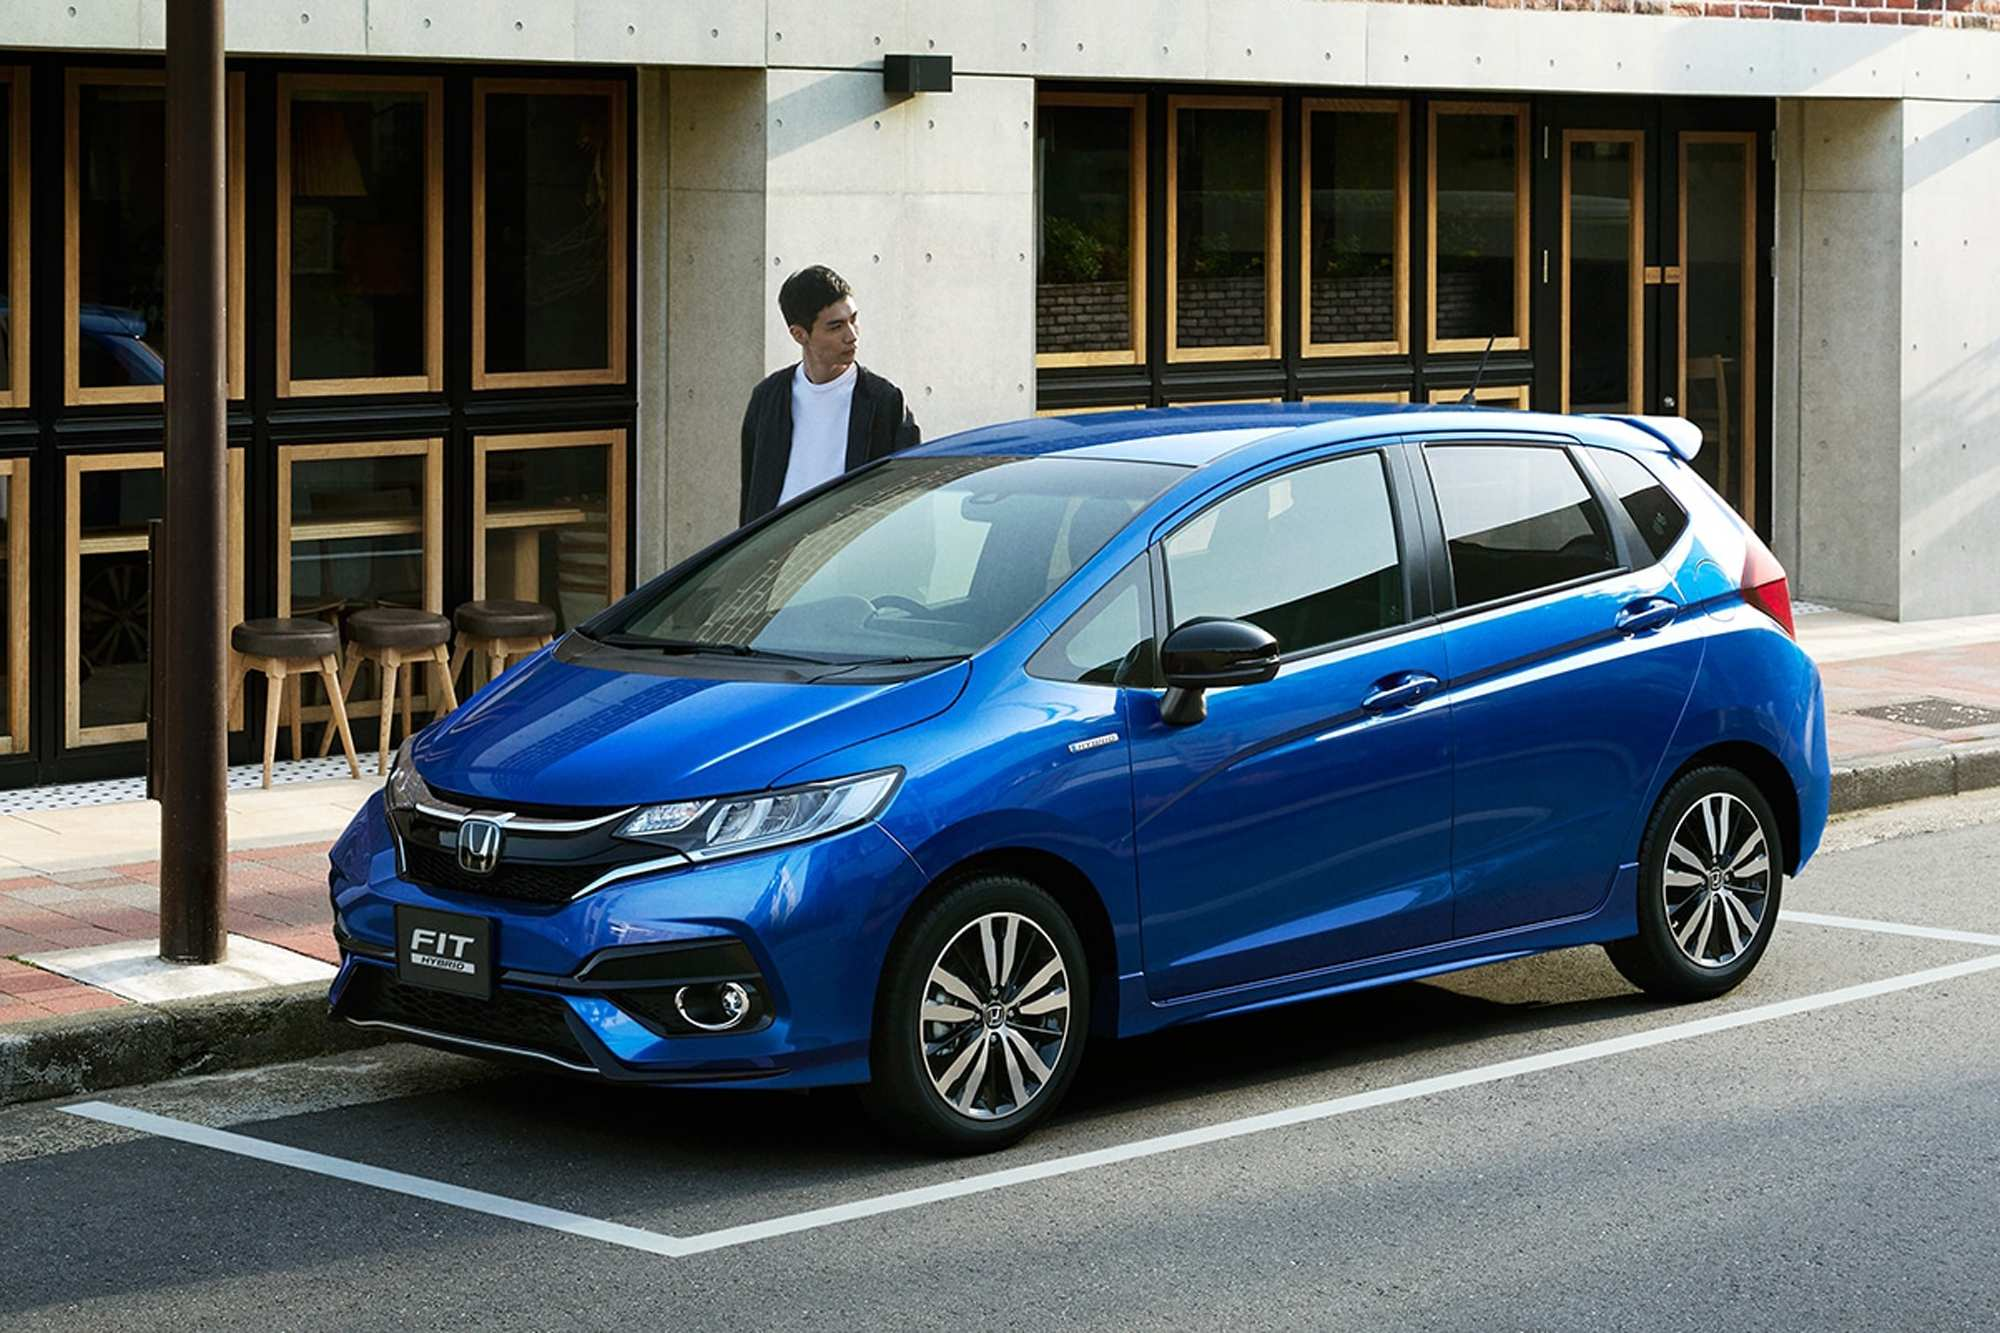 35 Gallery of Honda Jazz 2020 Model Style for Honda Jazz 2020 Model